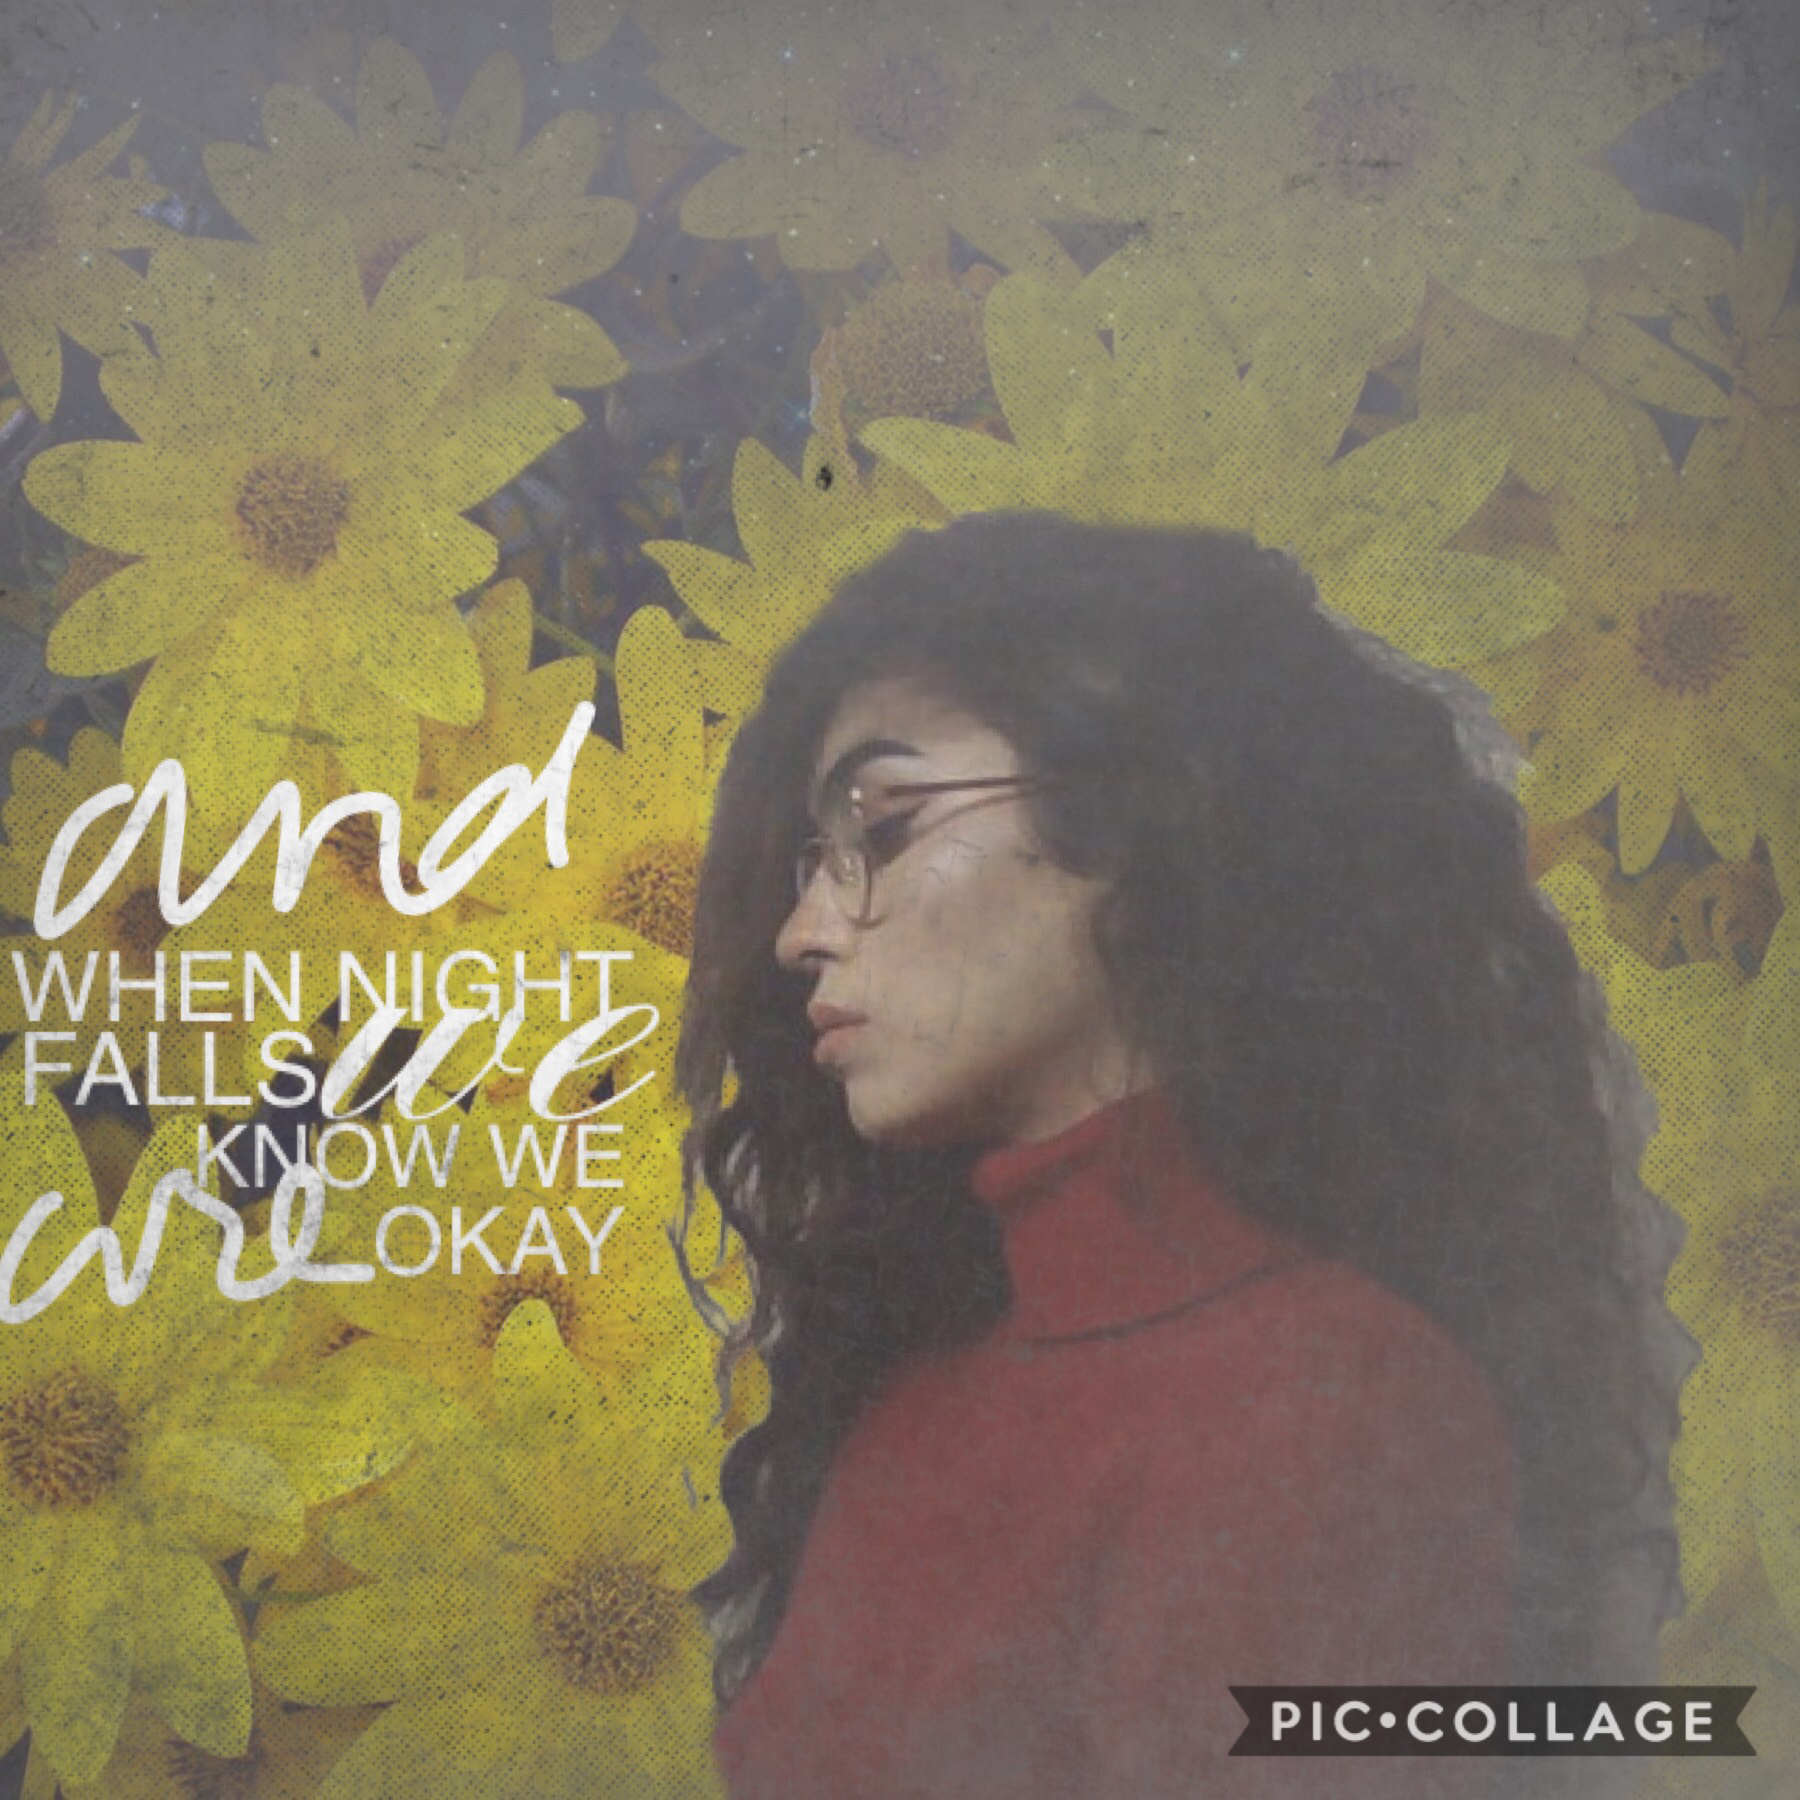 tappers  🌻 hey 🌻 it's me, lauryn! 👌🏻 this is my first collage on this account, I hope you like it! please help me spread the word about my new account! 😊 thanks 🤩💗